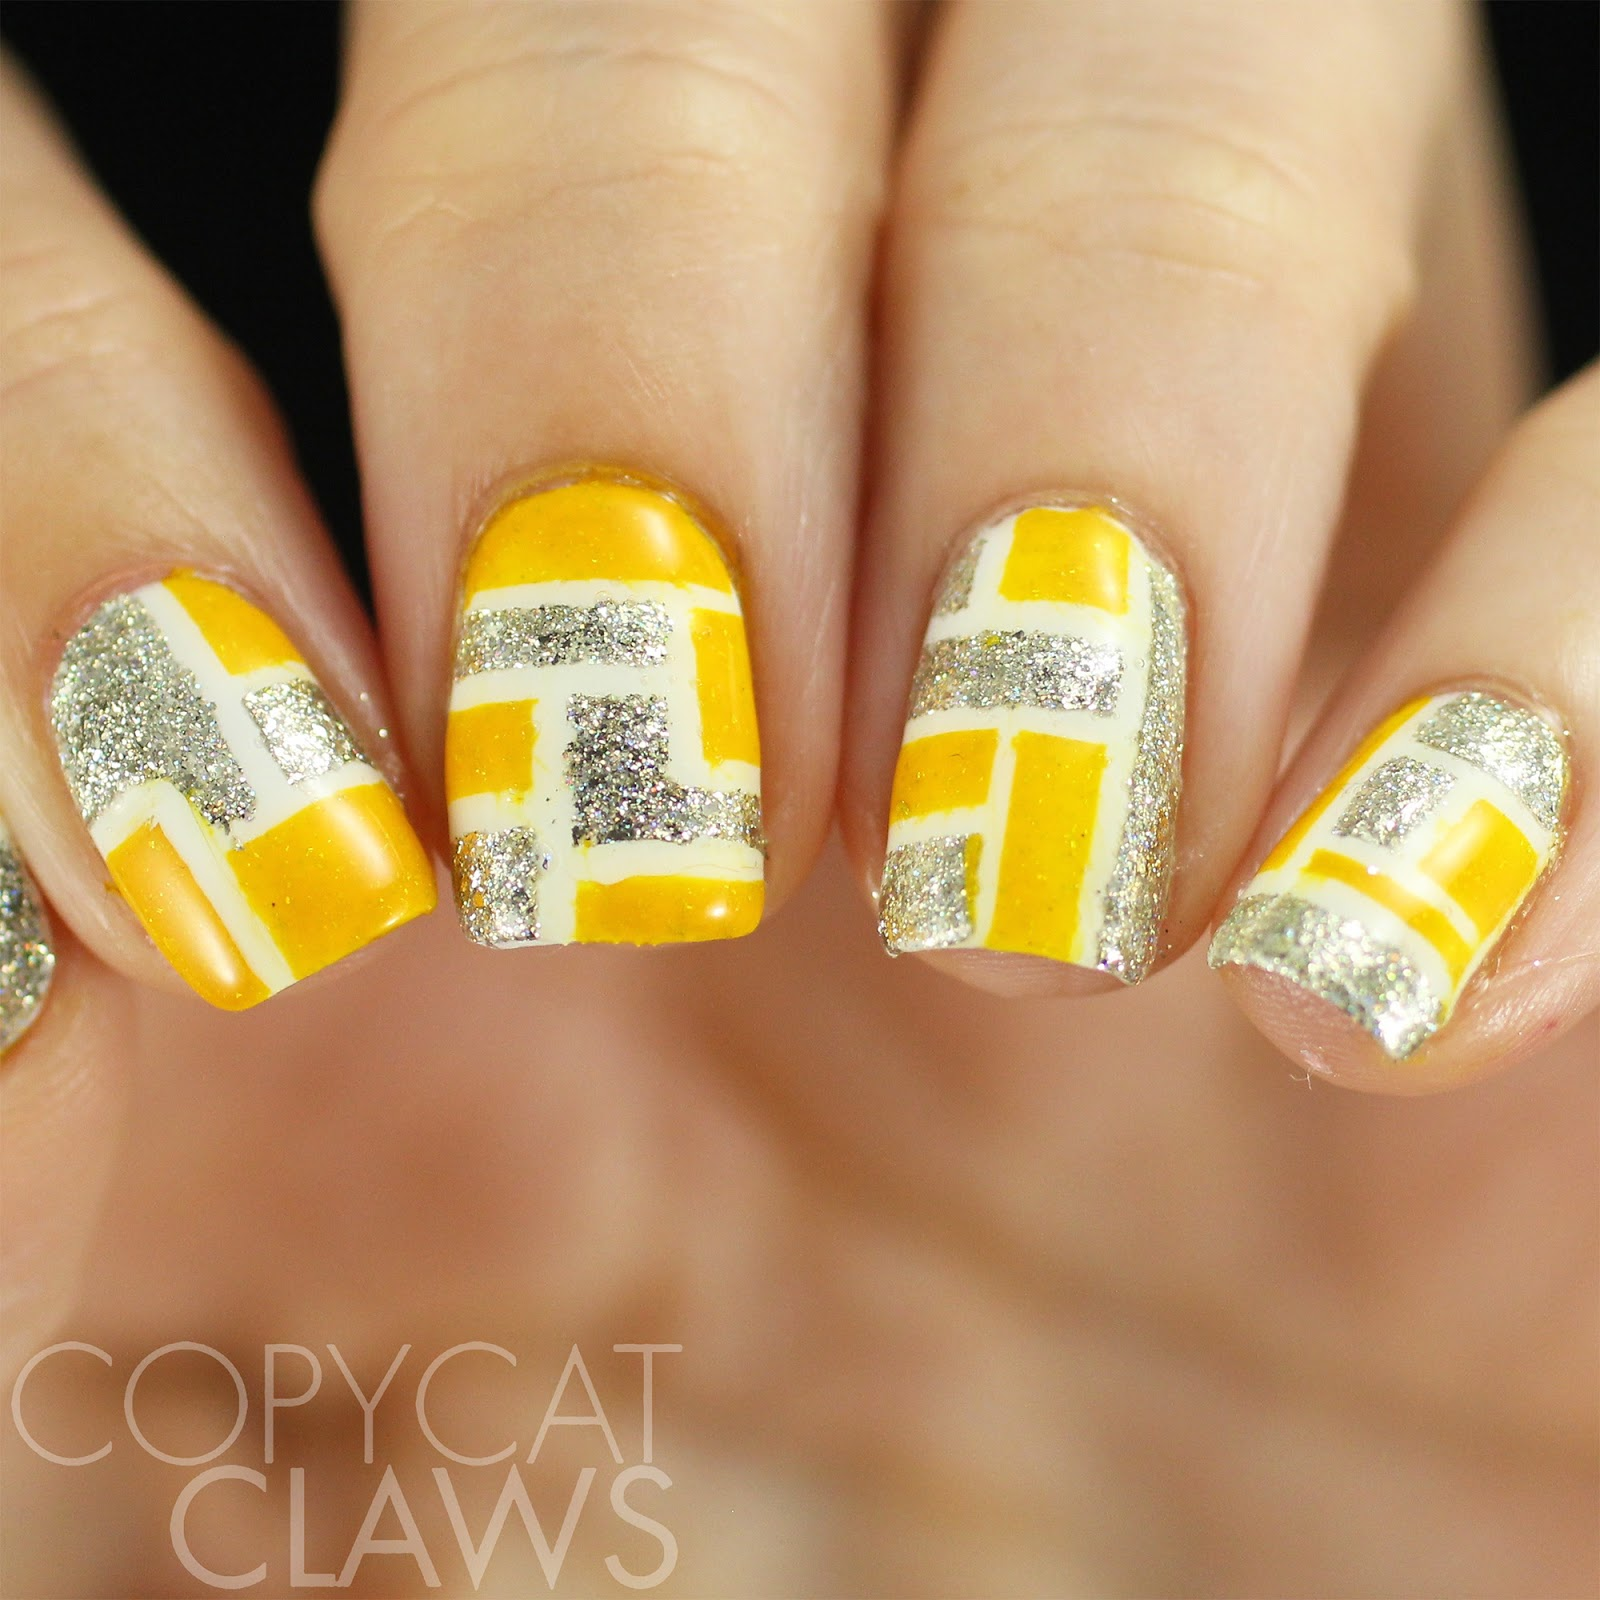 Copycat Claws 40 Great Nail Art Ideas Yellow Silver